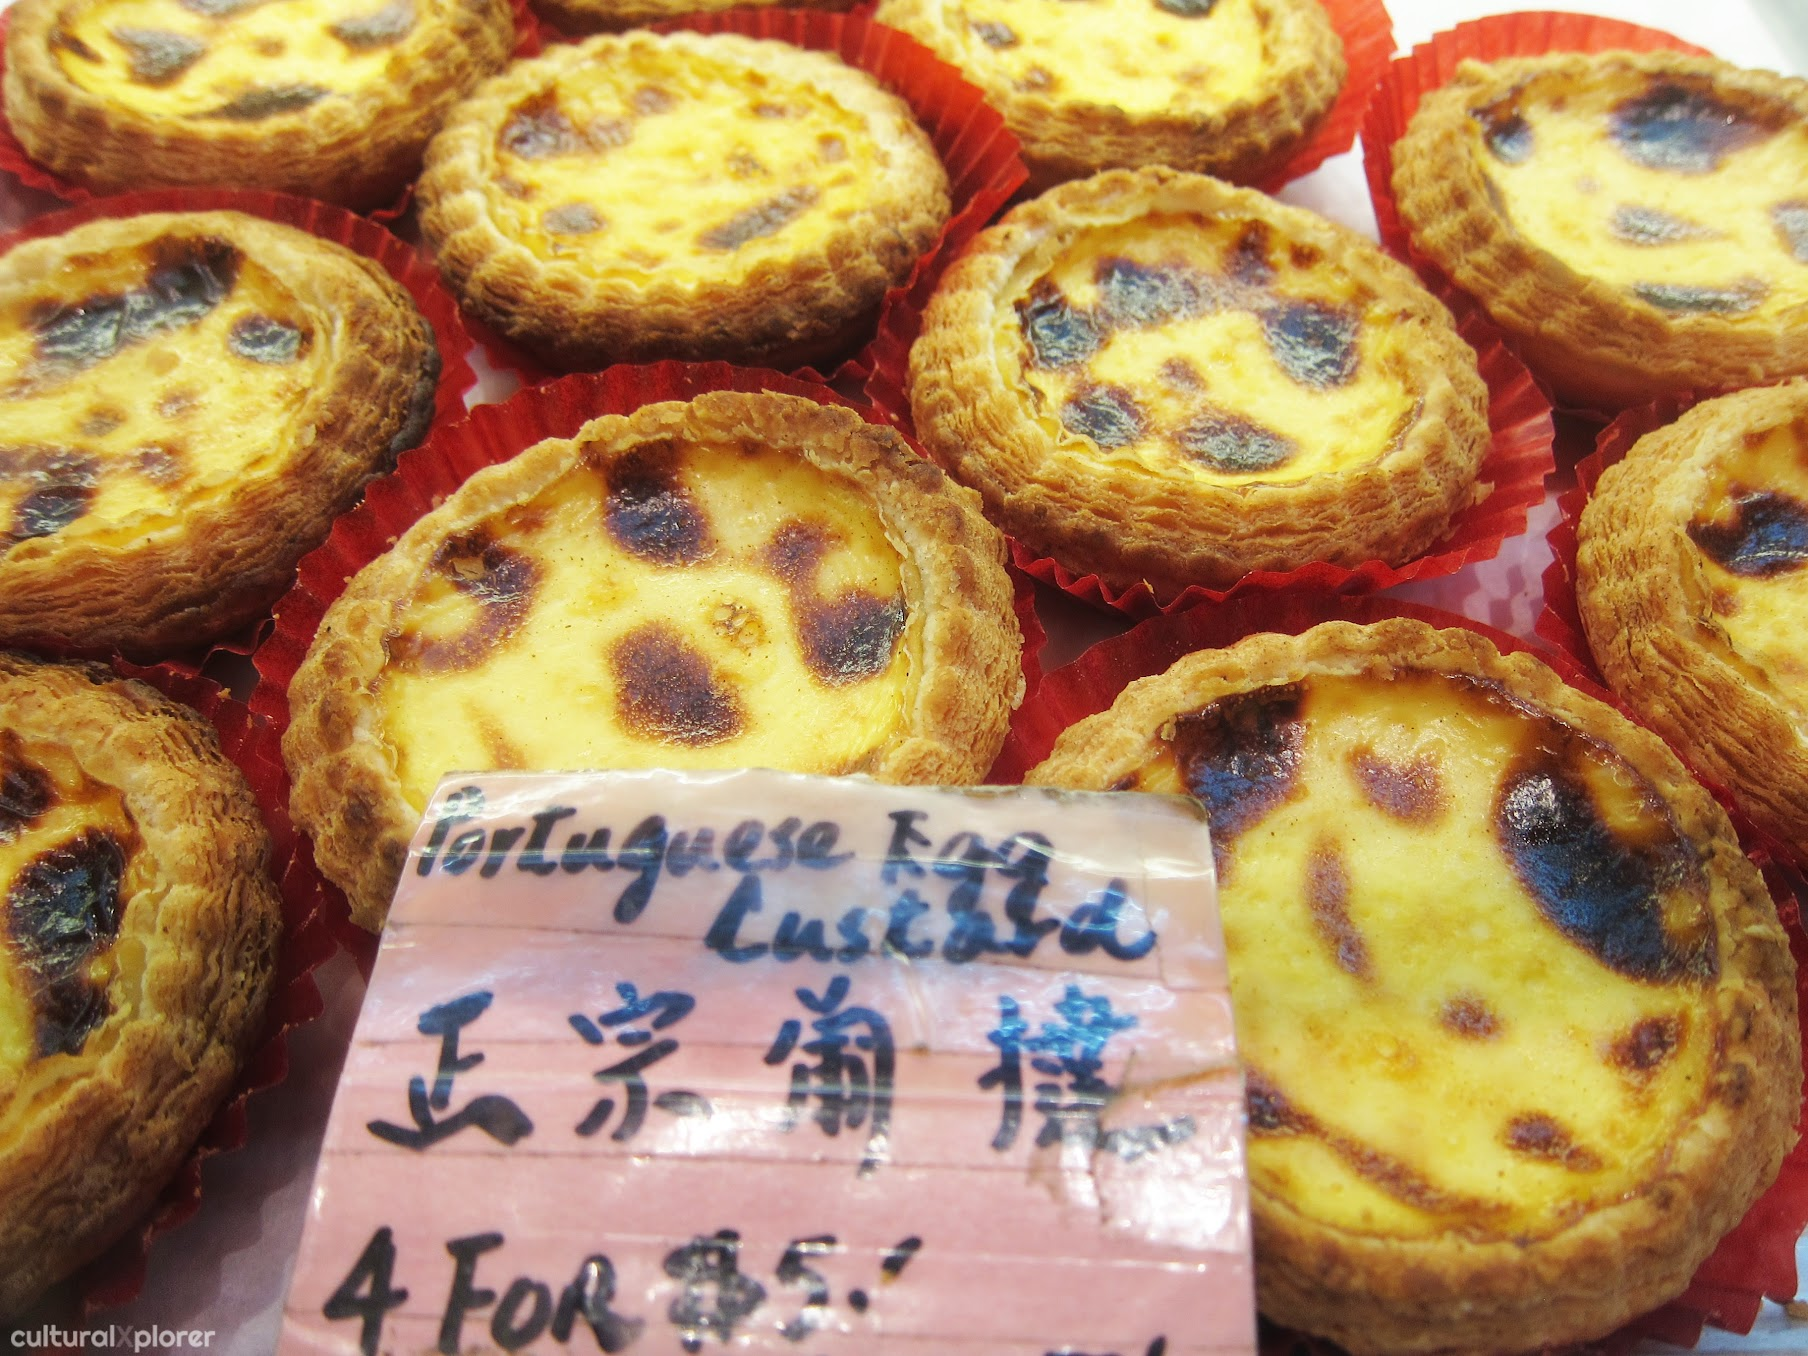 Portugese Egg Custard at New Flushing Bakery